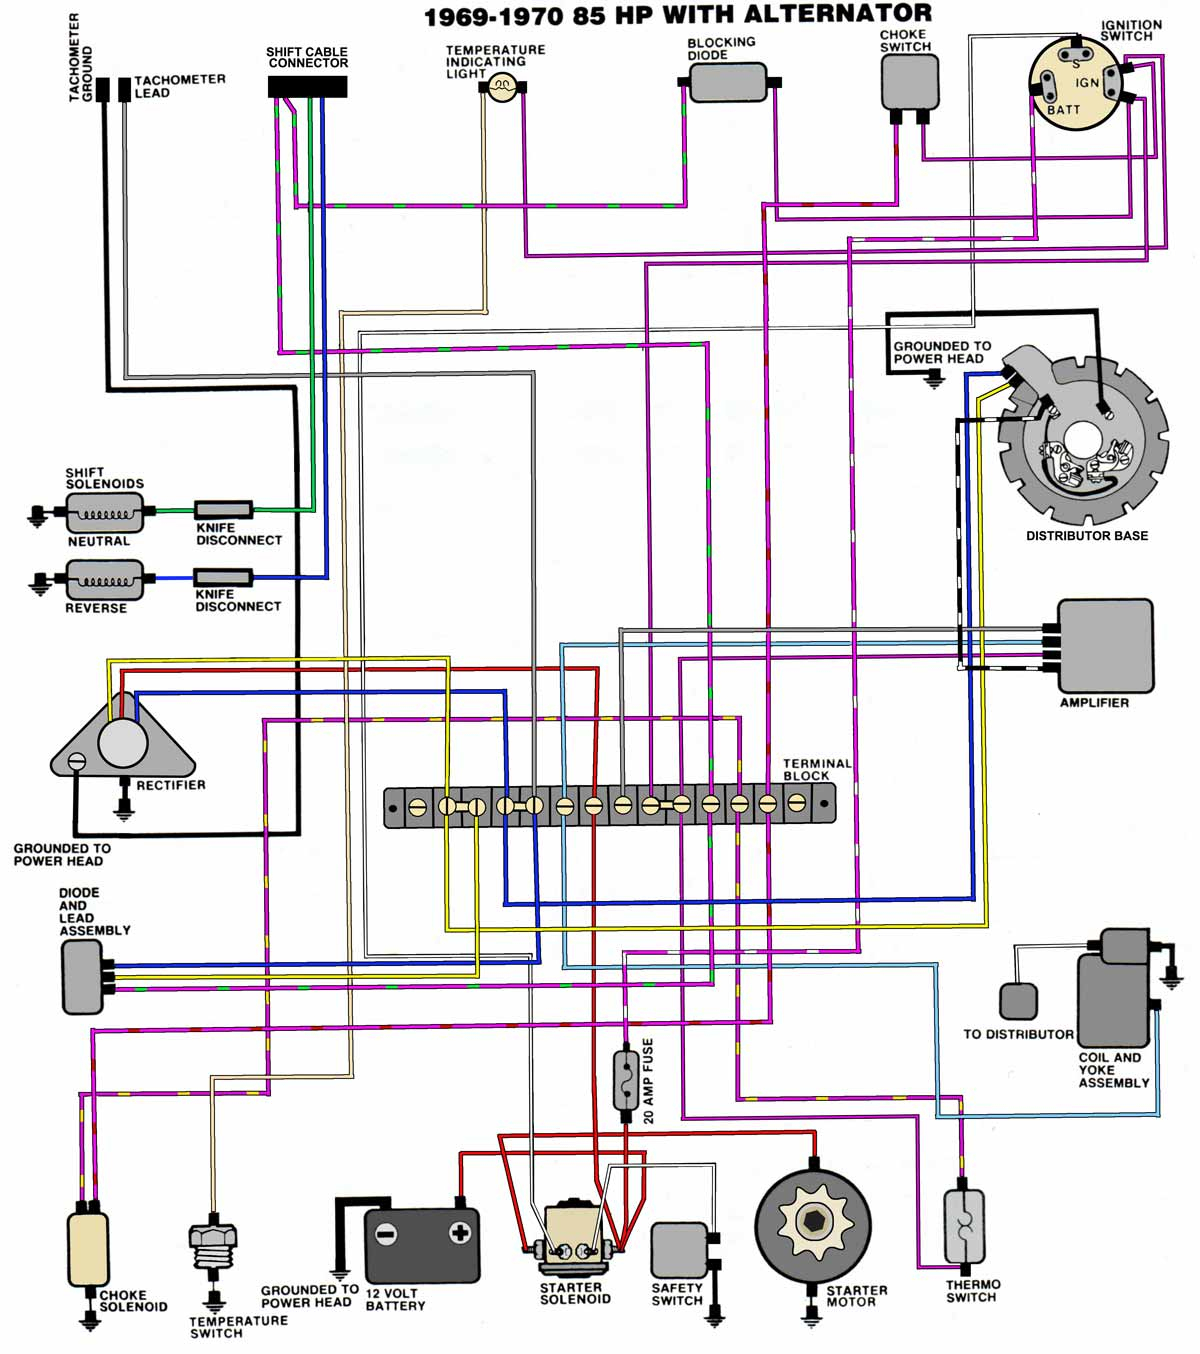 1972 50 Hp Evinrude Wiring Diagram | Wiring Diagram - Evinrude Power Pack Wiring Diagram